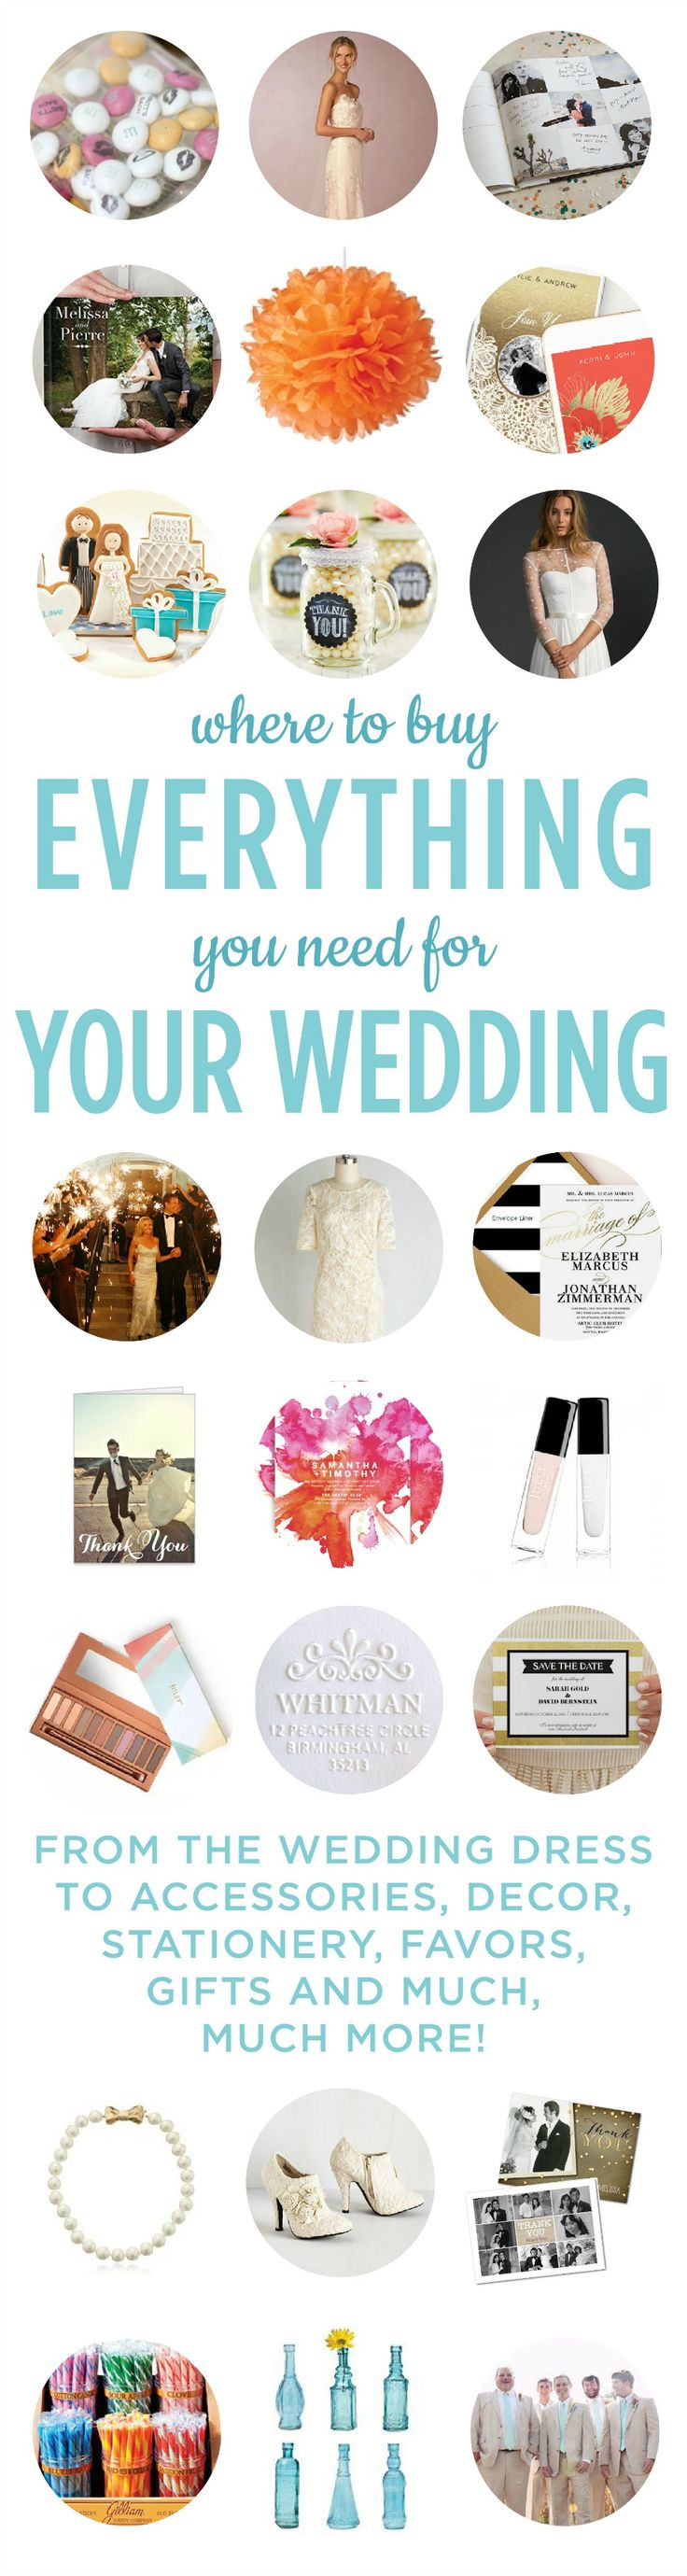 Best wedding resources we love images on pinterest creative